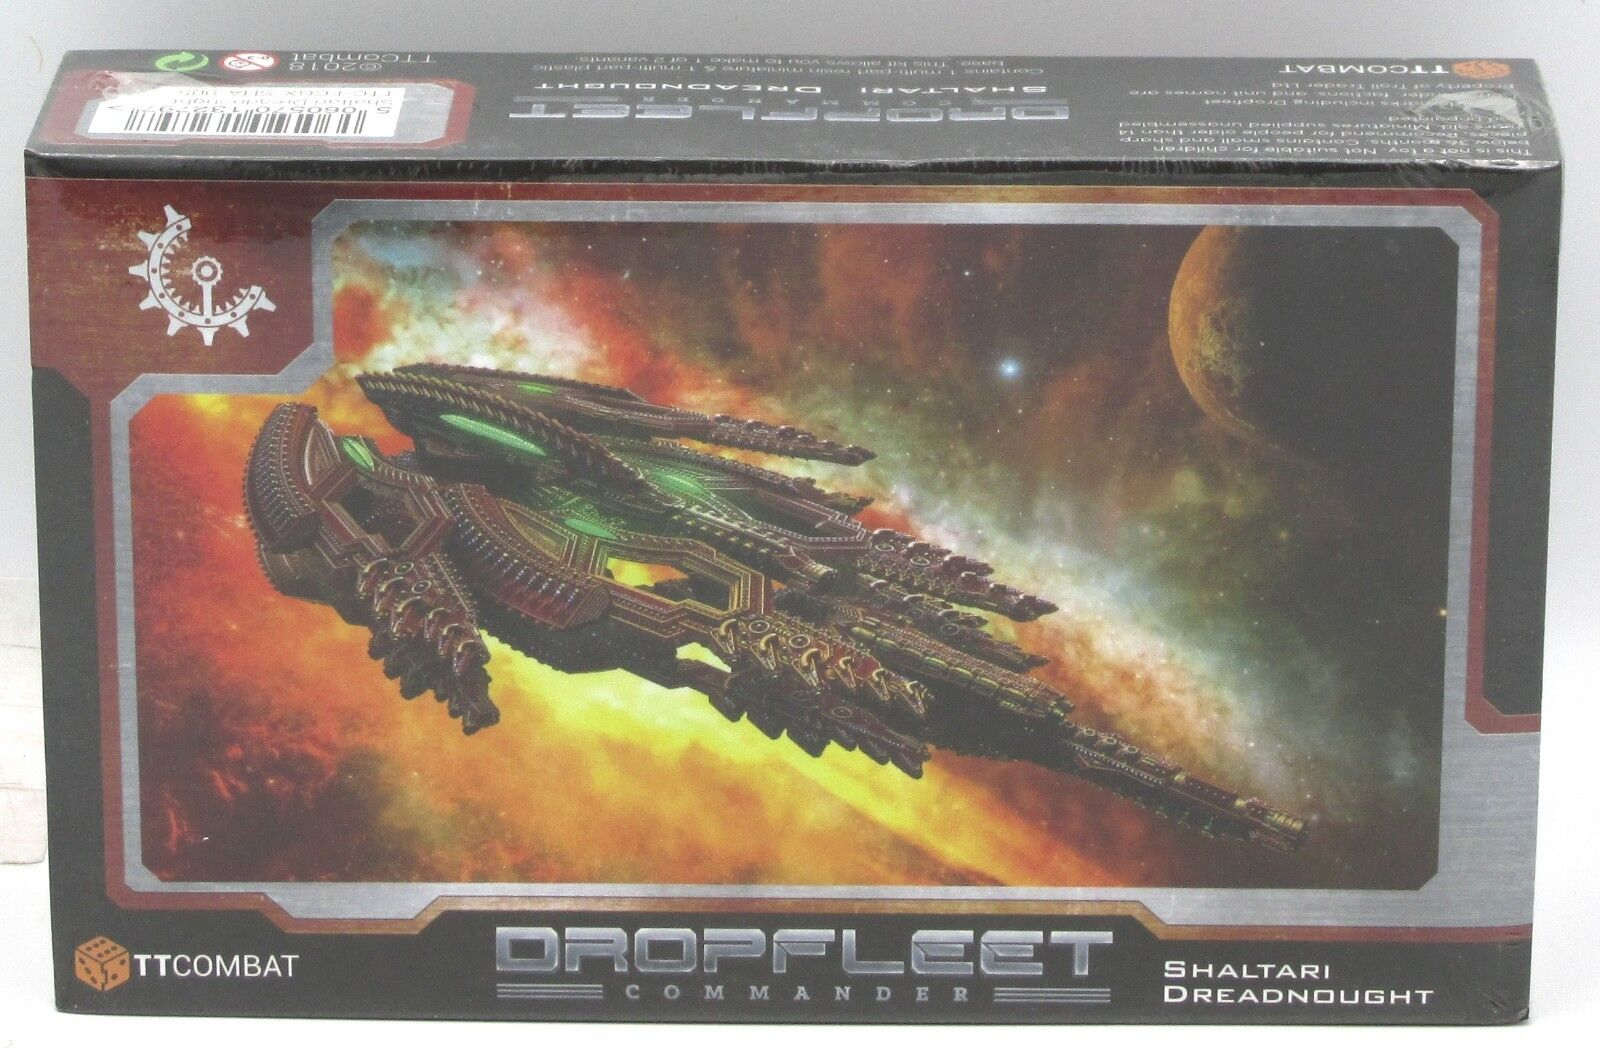 Dropfleet Commander TTC-FCGX-SHA-005 Shaltari Dreadnought (Plutonium or Uranium)